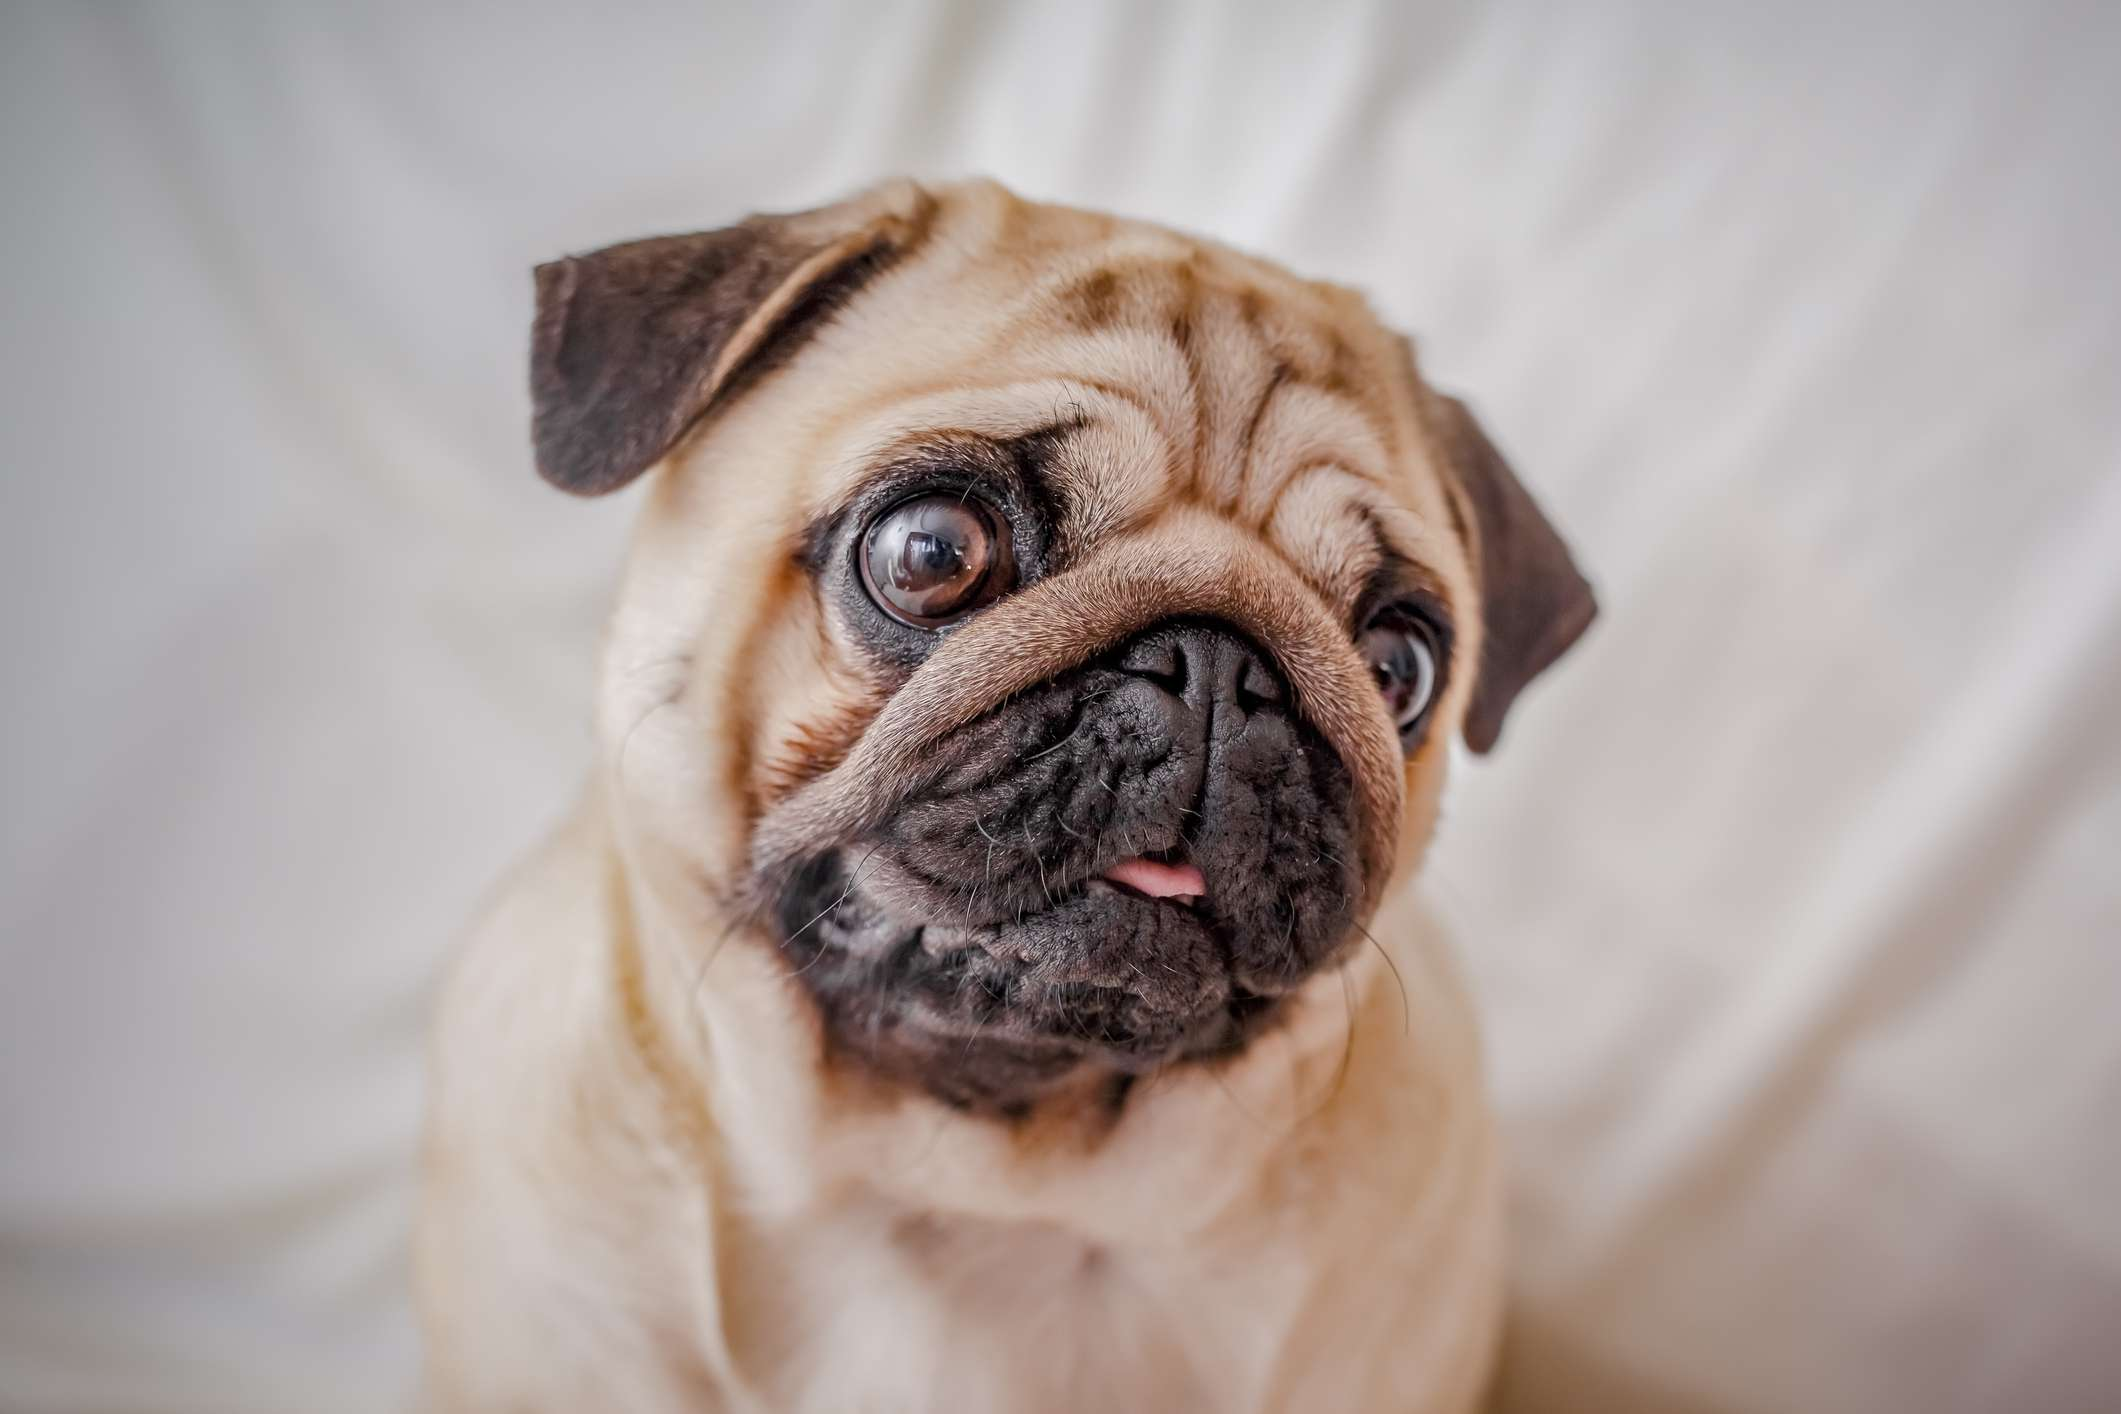 Pug smiling in front of white background.